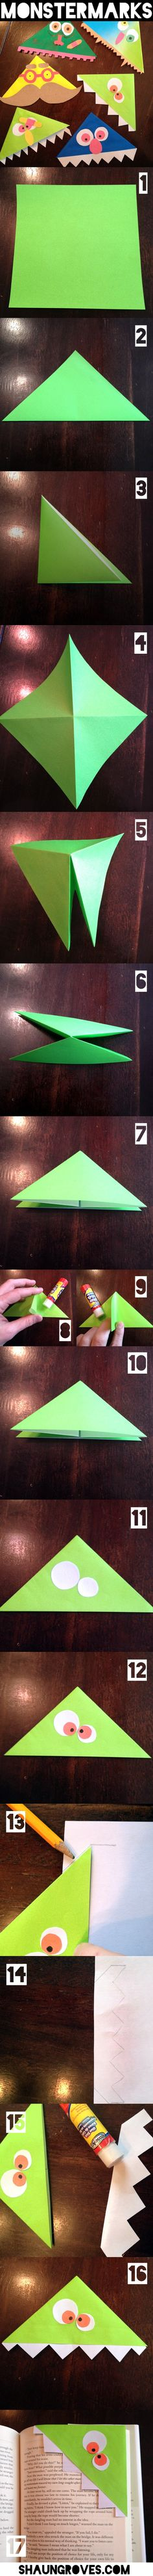 Monstermarks � Kid Craft Tutorial. Easy bookmark craft for kids (and dads).